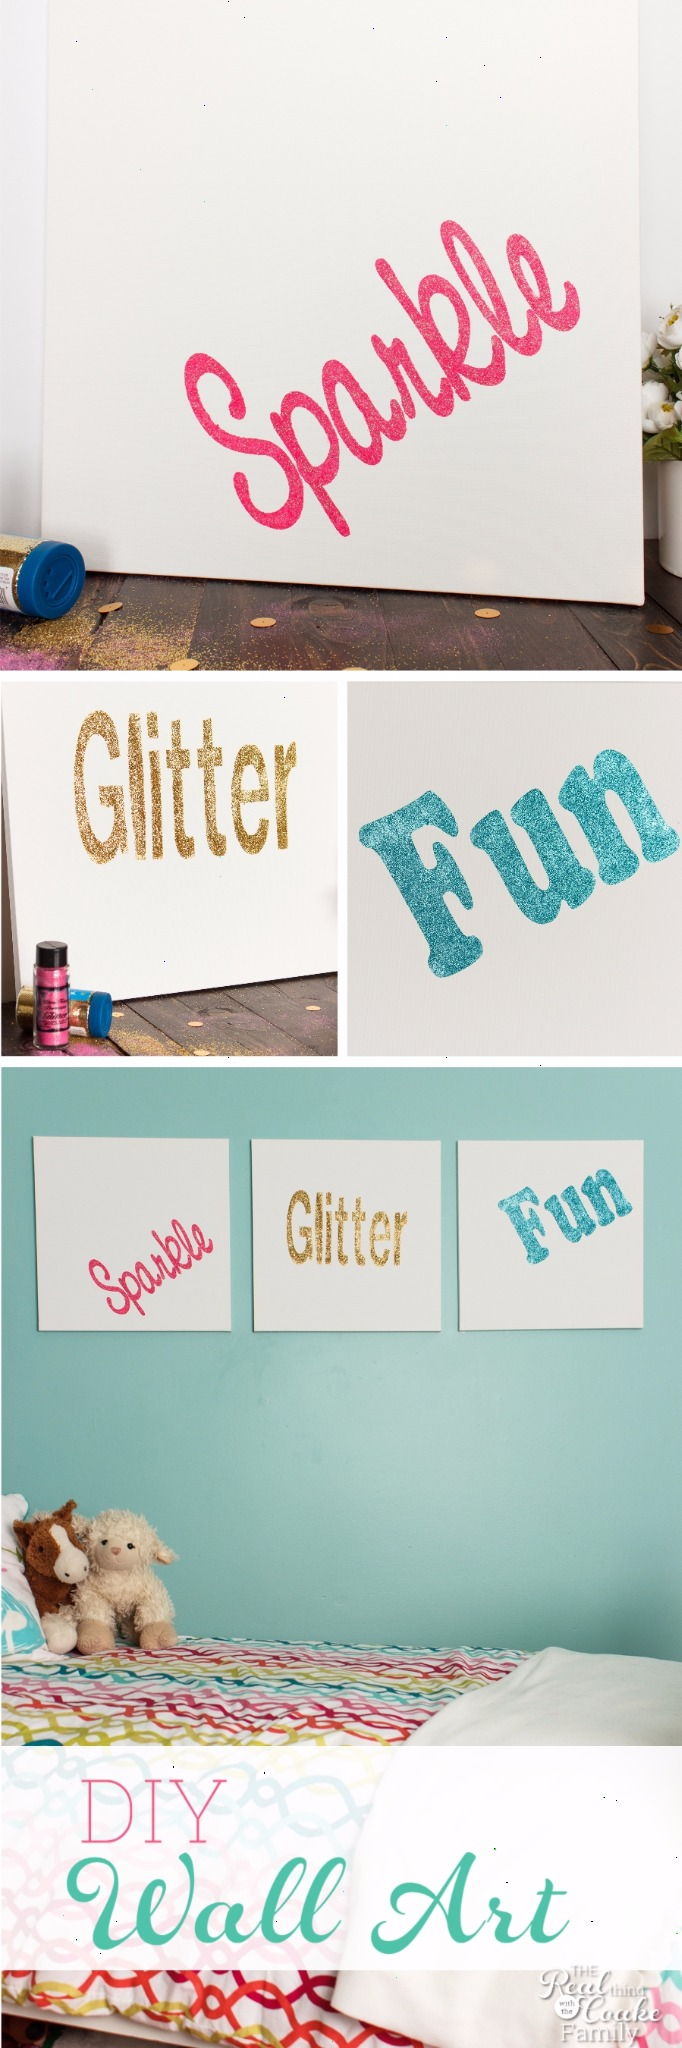 Sparkle, Glitter, Fun DIY Room Decor Step by Step Directions